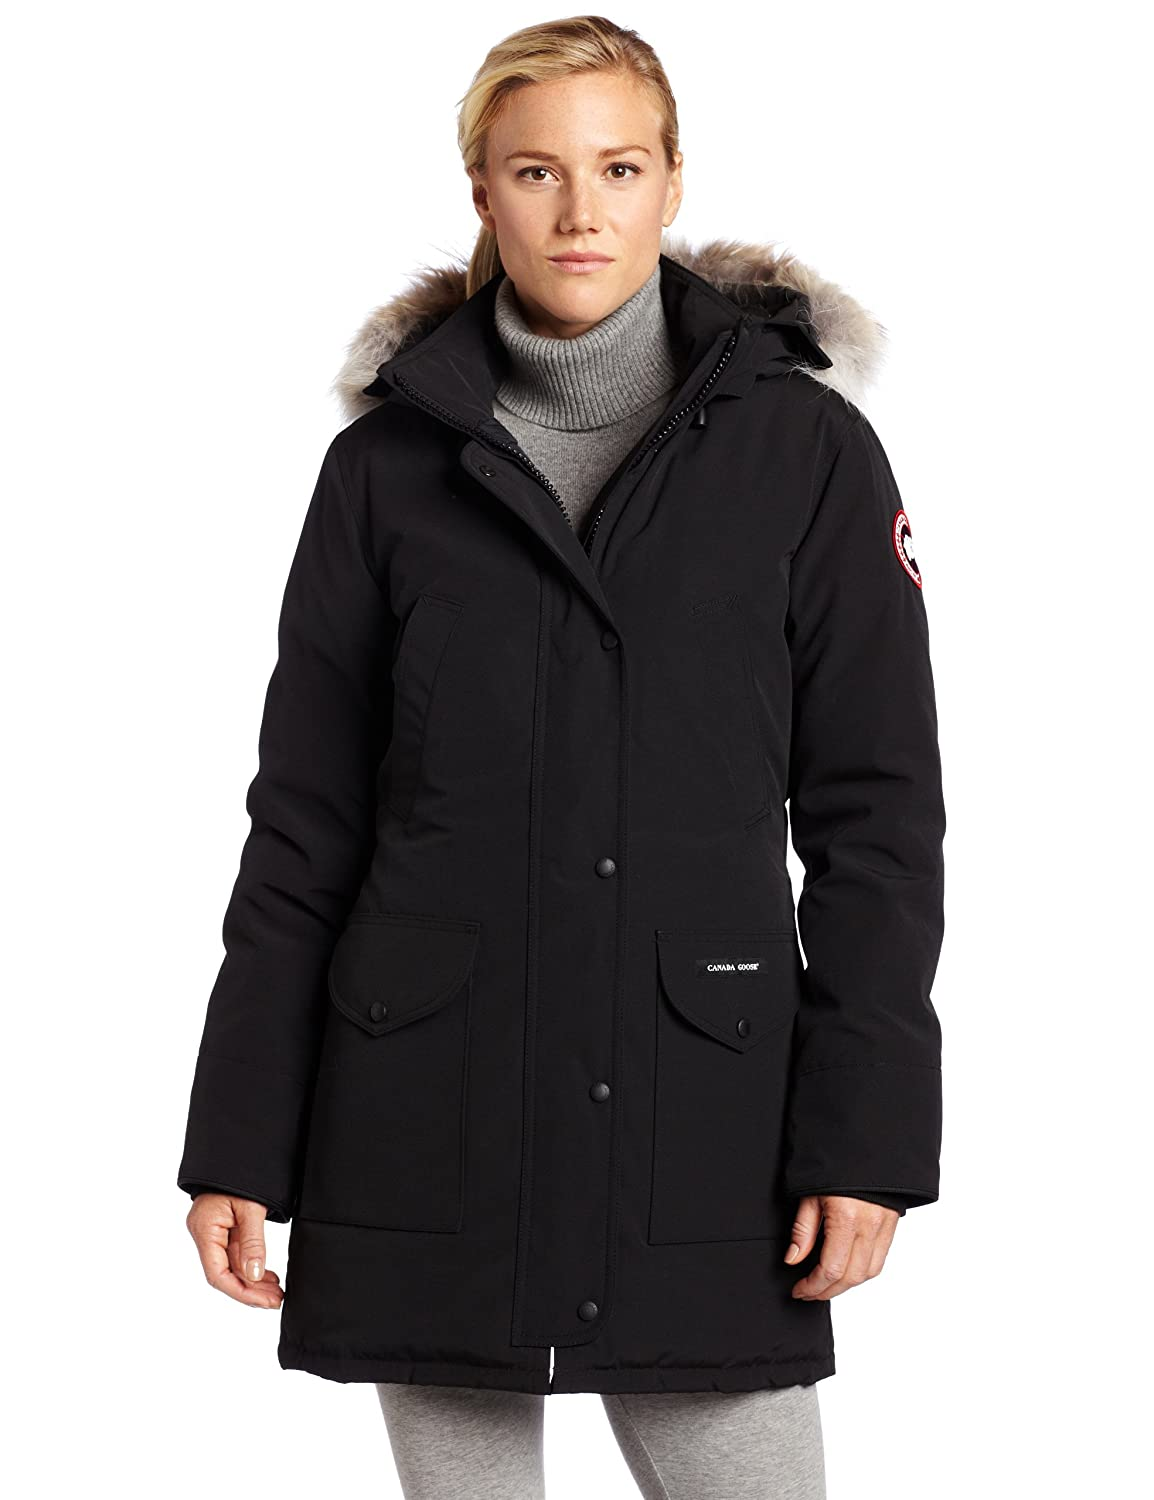 Find Parka from the Womens department at Debenhams. Shop a wide range of Coats & jackets products and more at our online shop today. Menu Menu Petite black padded parka coat Save. Was £ Now £ Wallis Black luxury parka coat Save. Was £ .